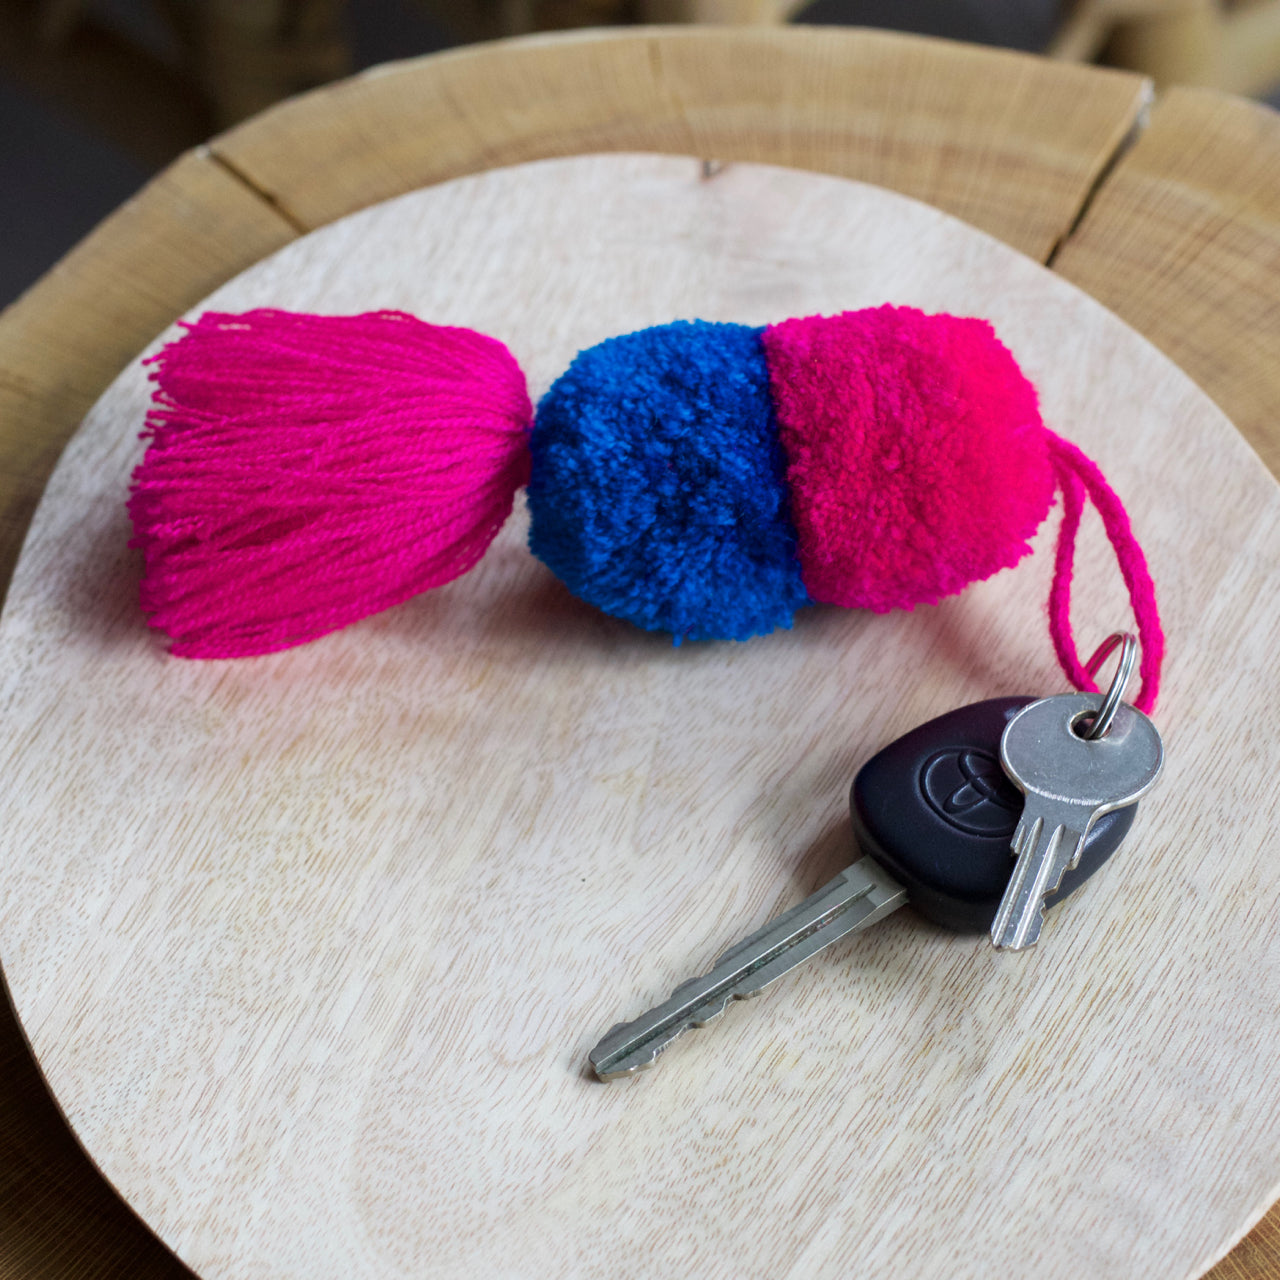 Pom Pom Key Ring 02  Key Ring Pink & Blue - Cielo Collective handmade with tradition creativity and integrity